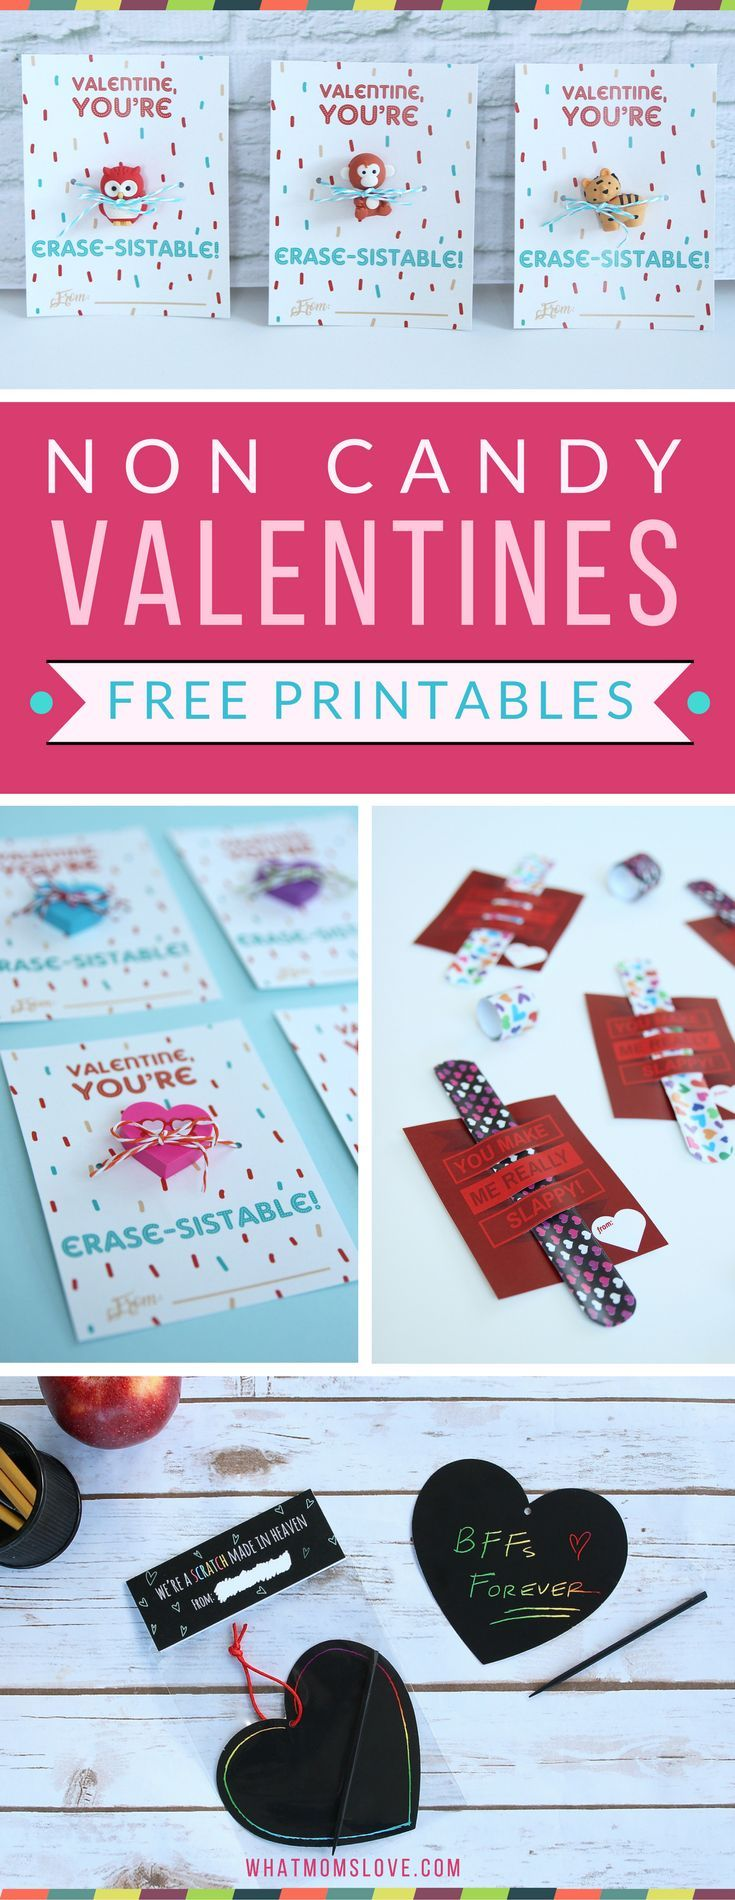 Free Printable No Candy Valentines Day Cards for your kids - these are the perfect cards for your child to hand out in their school classroom. Such cute and creative designs! See them all at whatmomslove.com